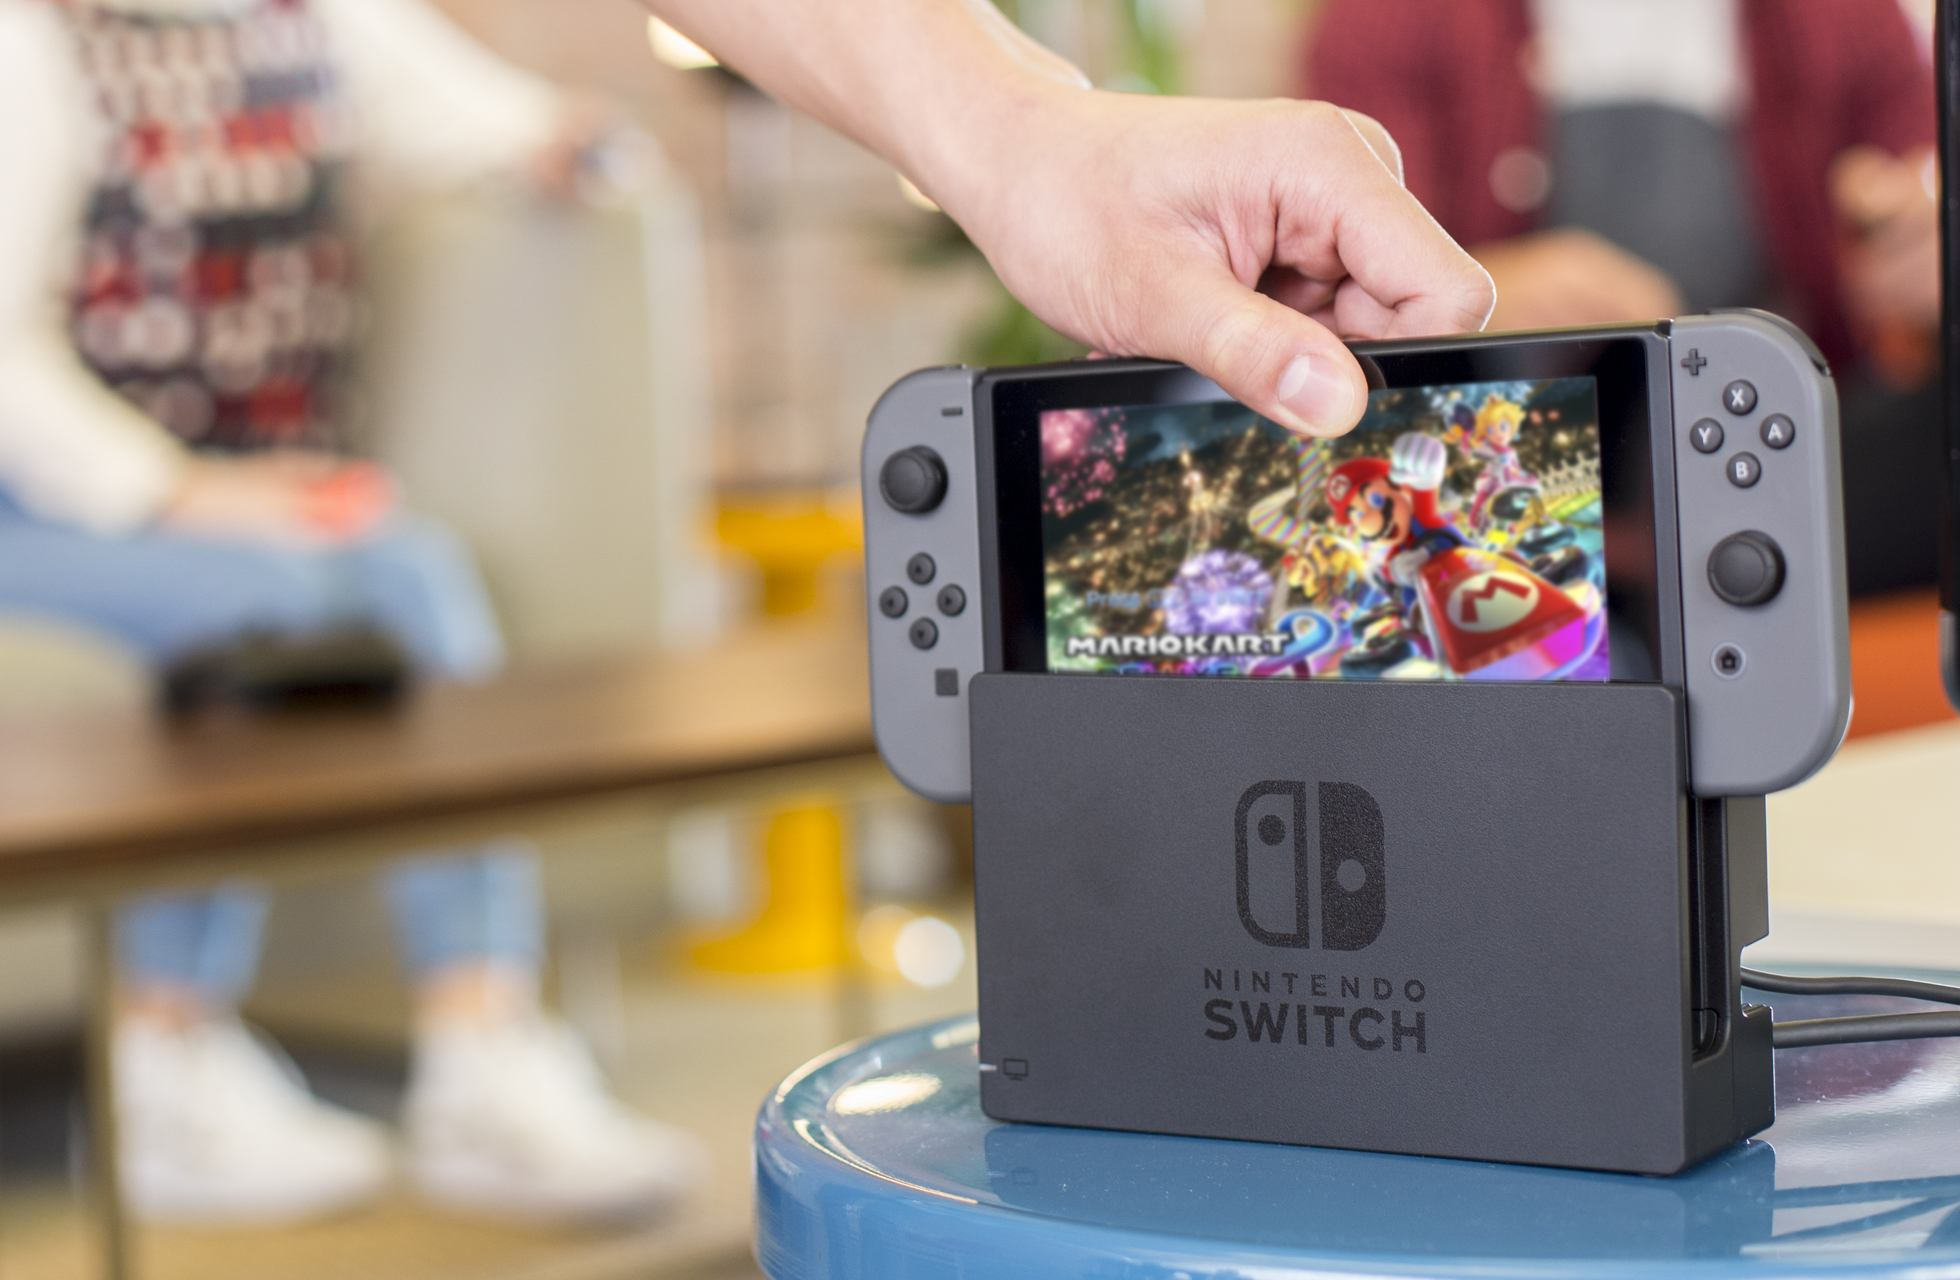 Games with Nintendo Switch